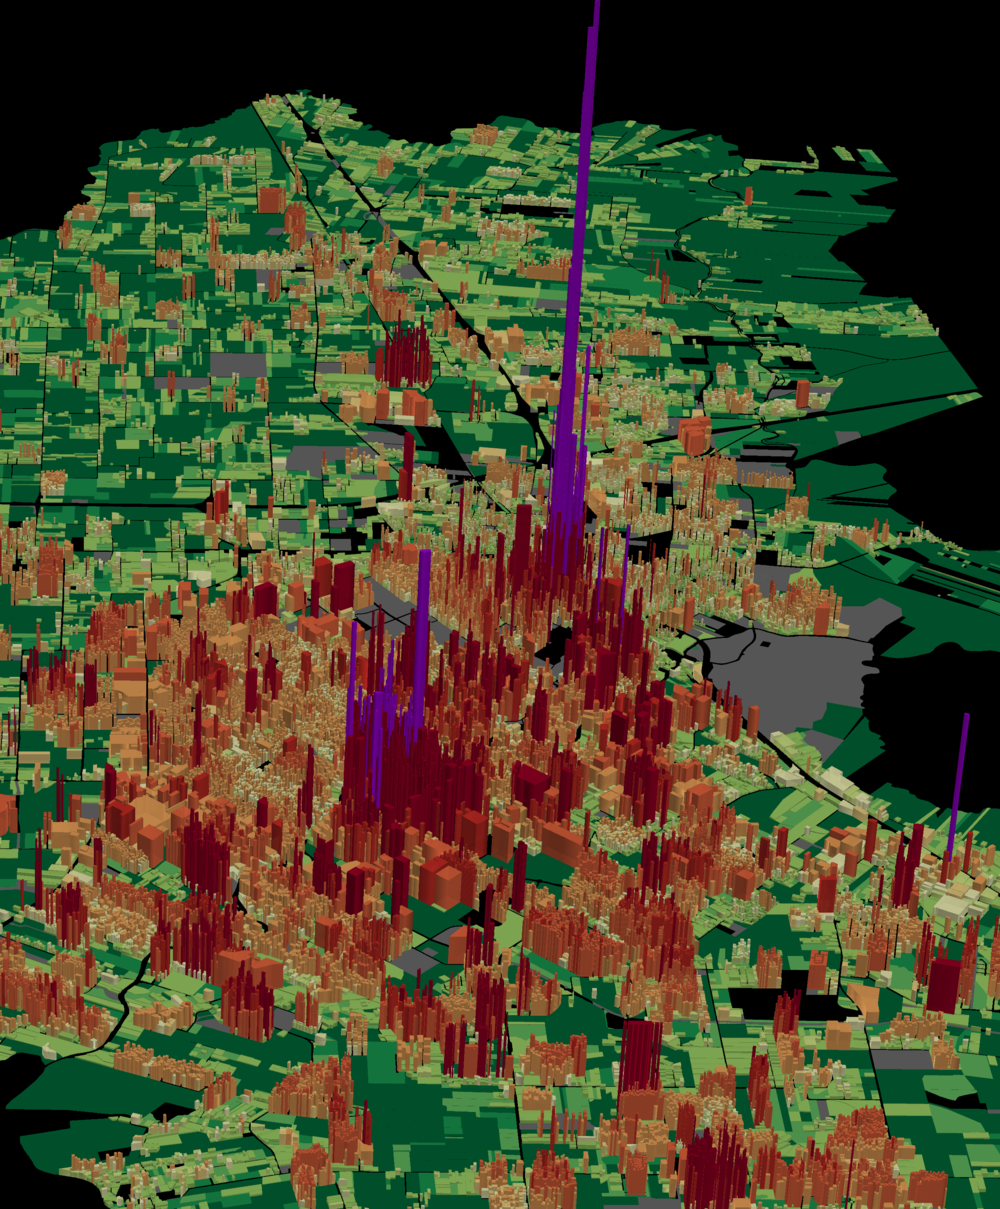 This map displays value per acre in Lafayette. Areas indicated by purple spikes contribute the most to the tax base. Green plateaus, including farms and non-development, contribute the least. (Source: Urban3)